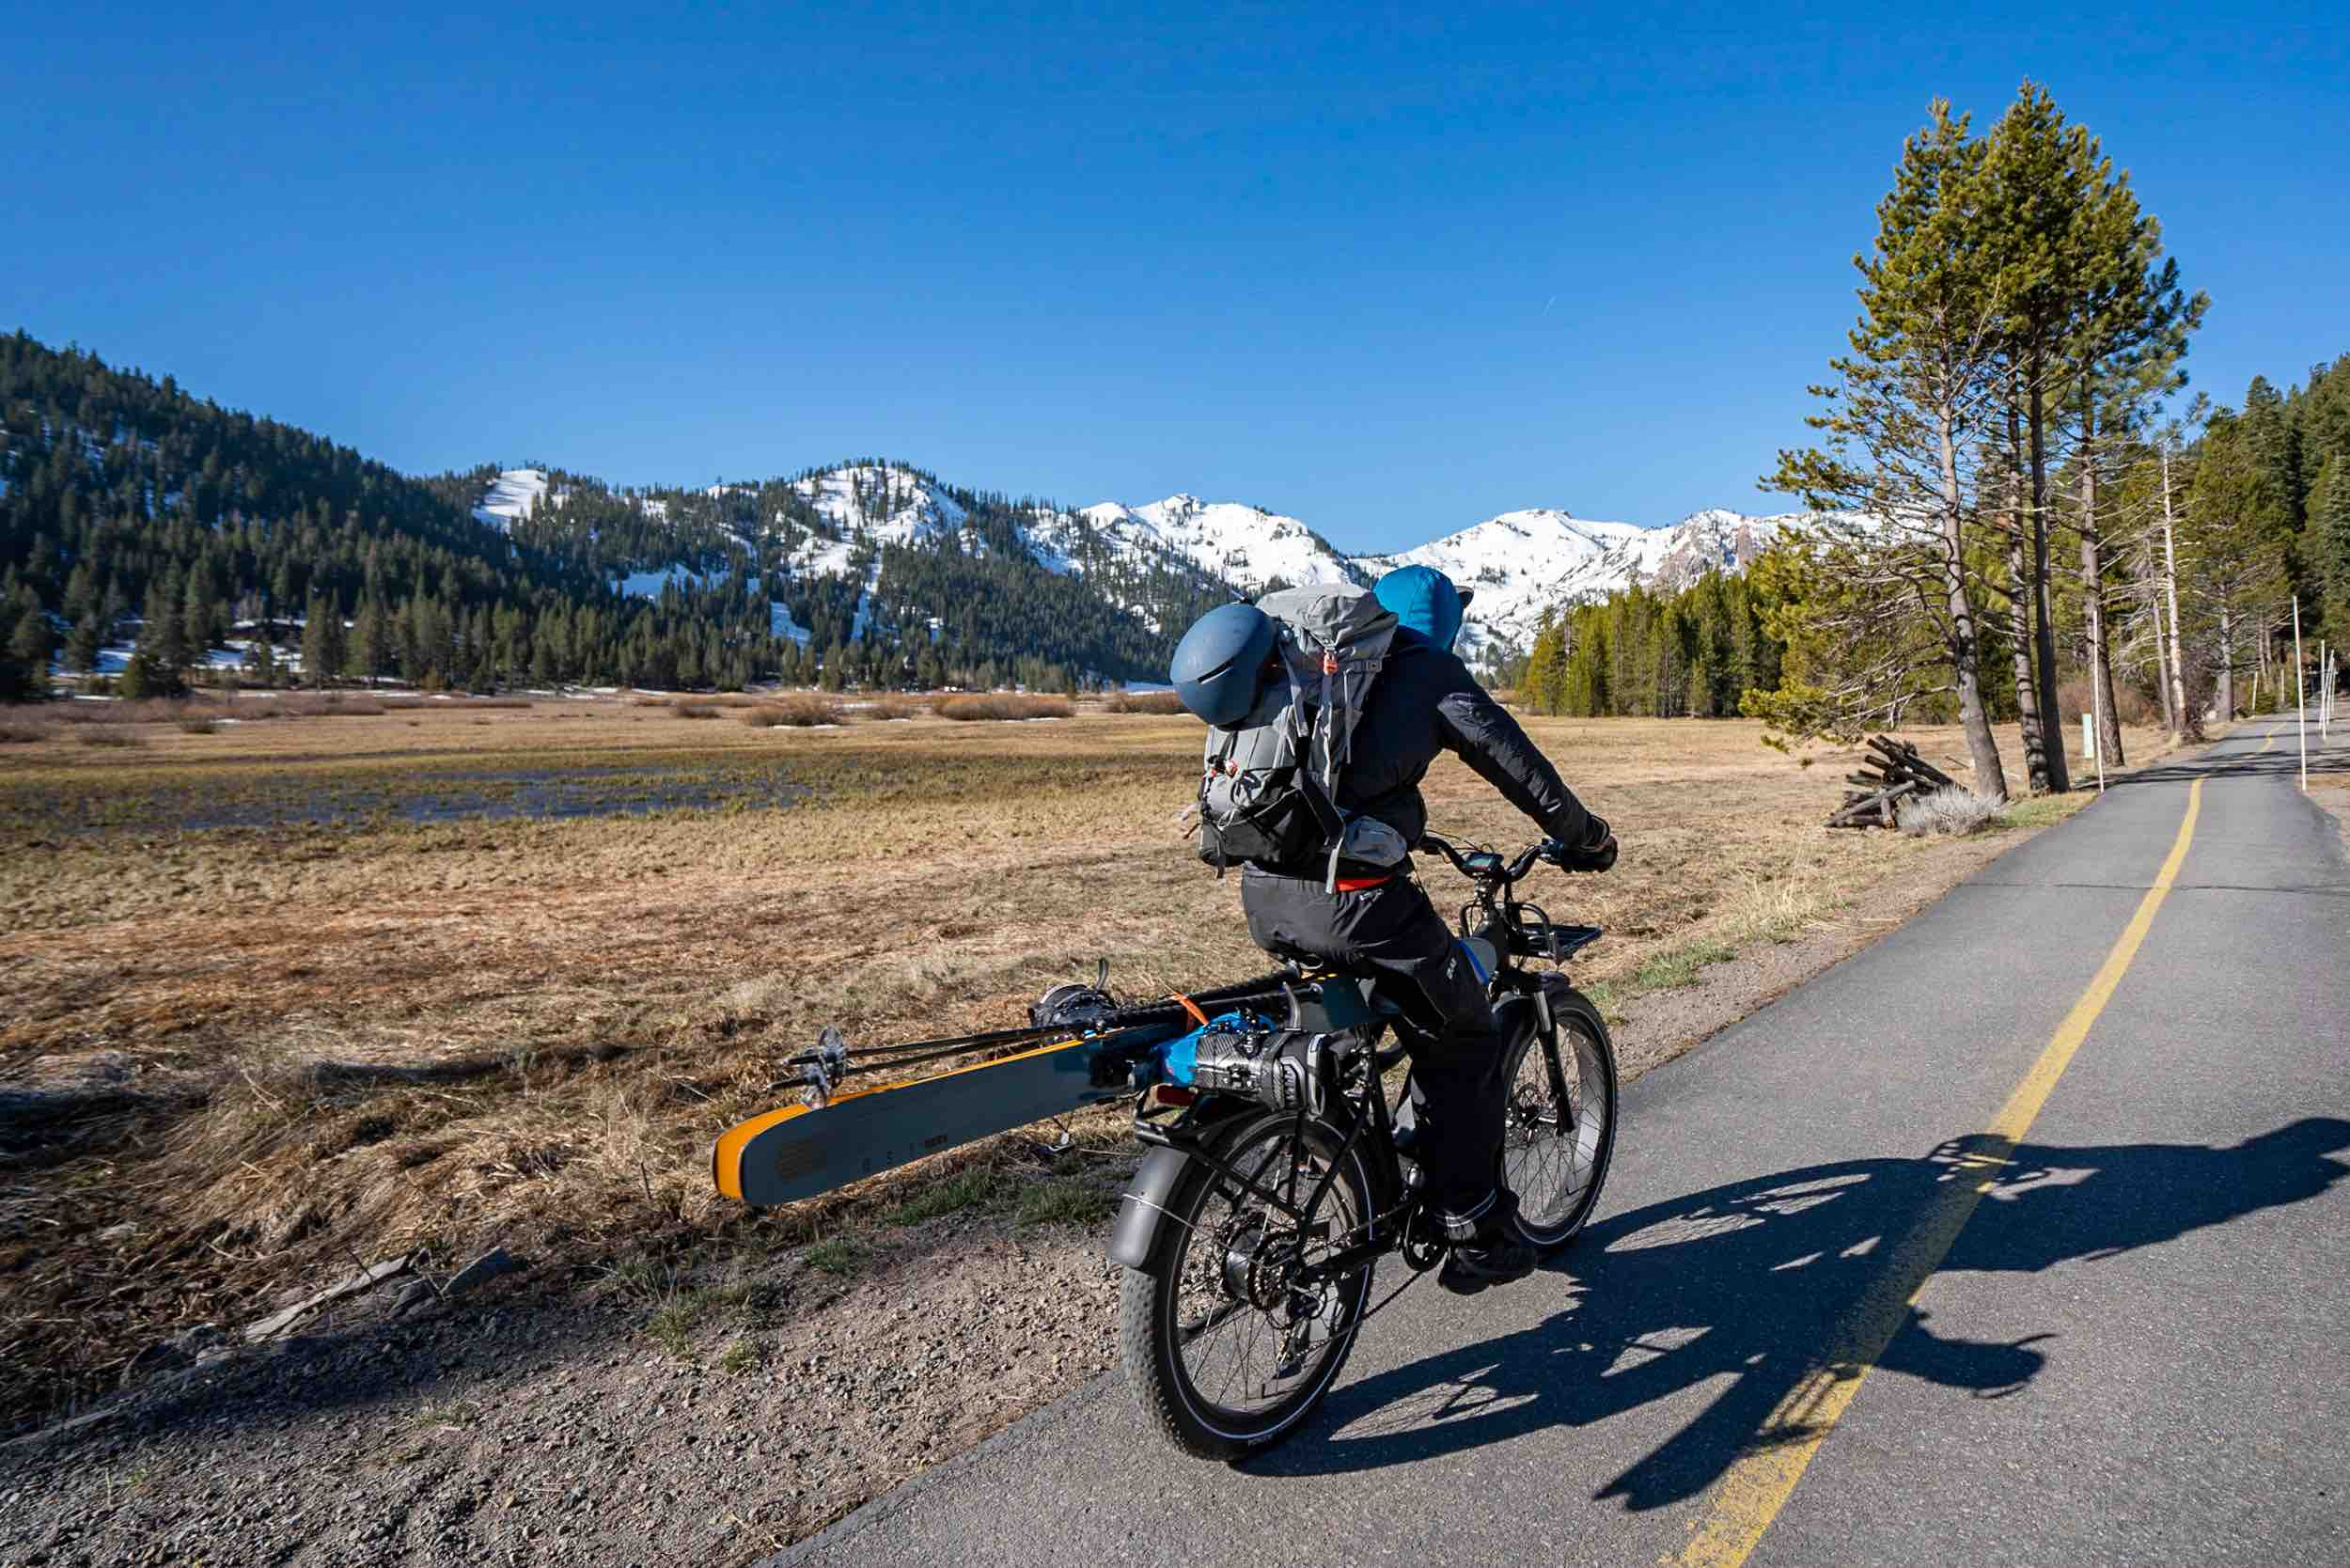 A skier rides toward a mountain with a pair of skis affixed to his RadRover.